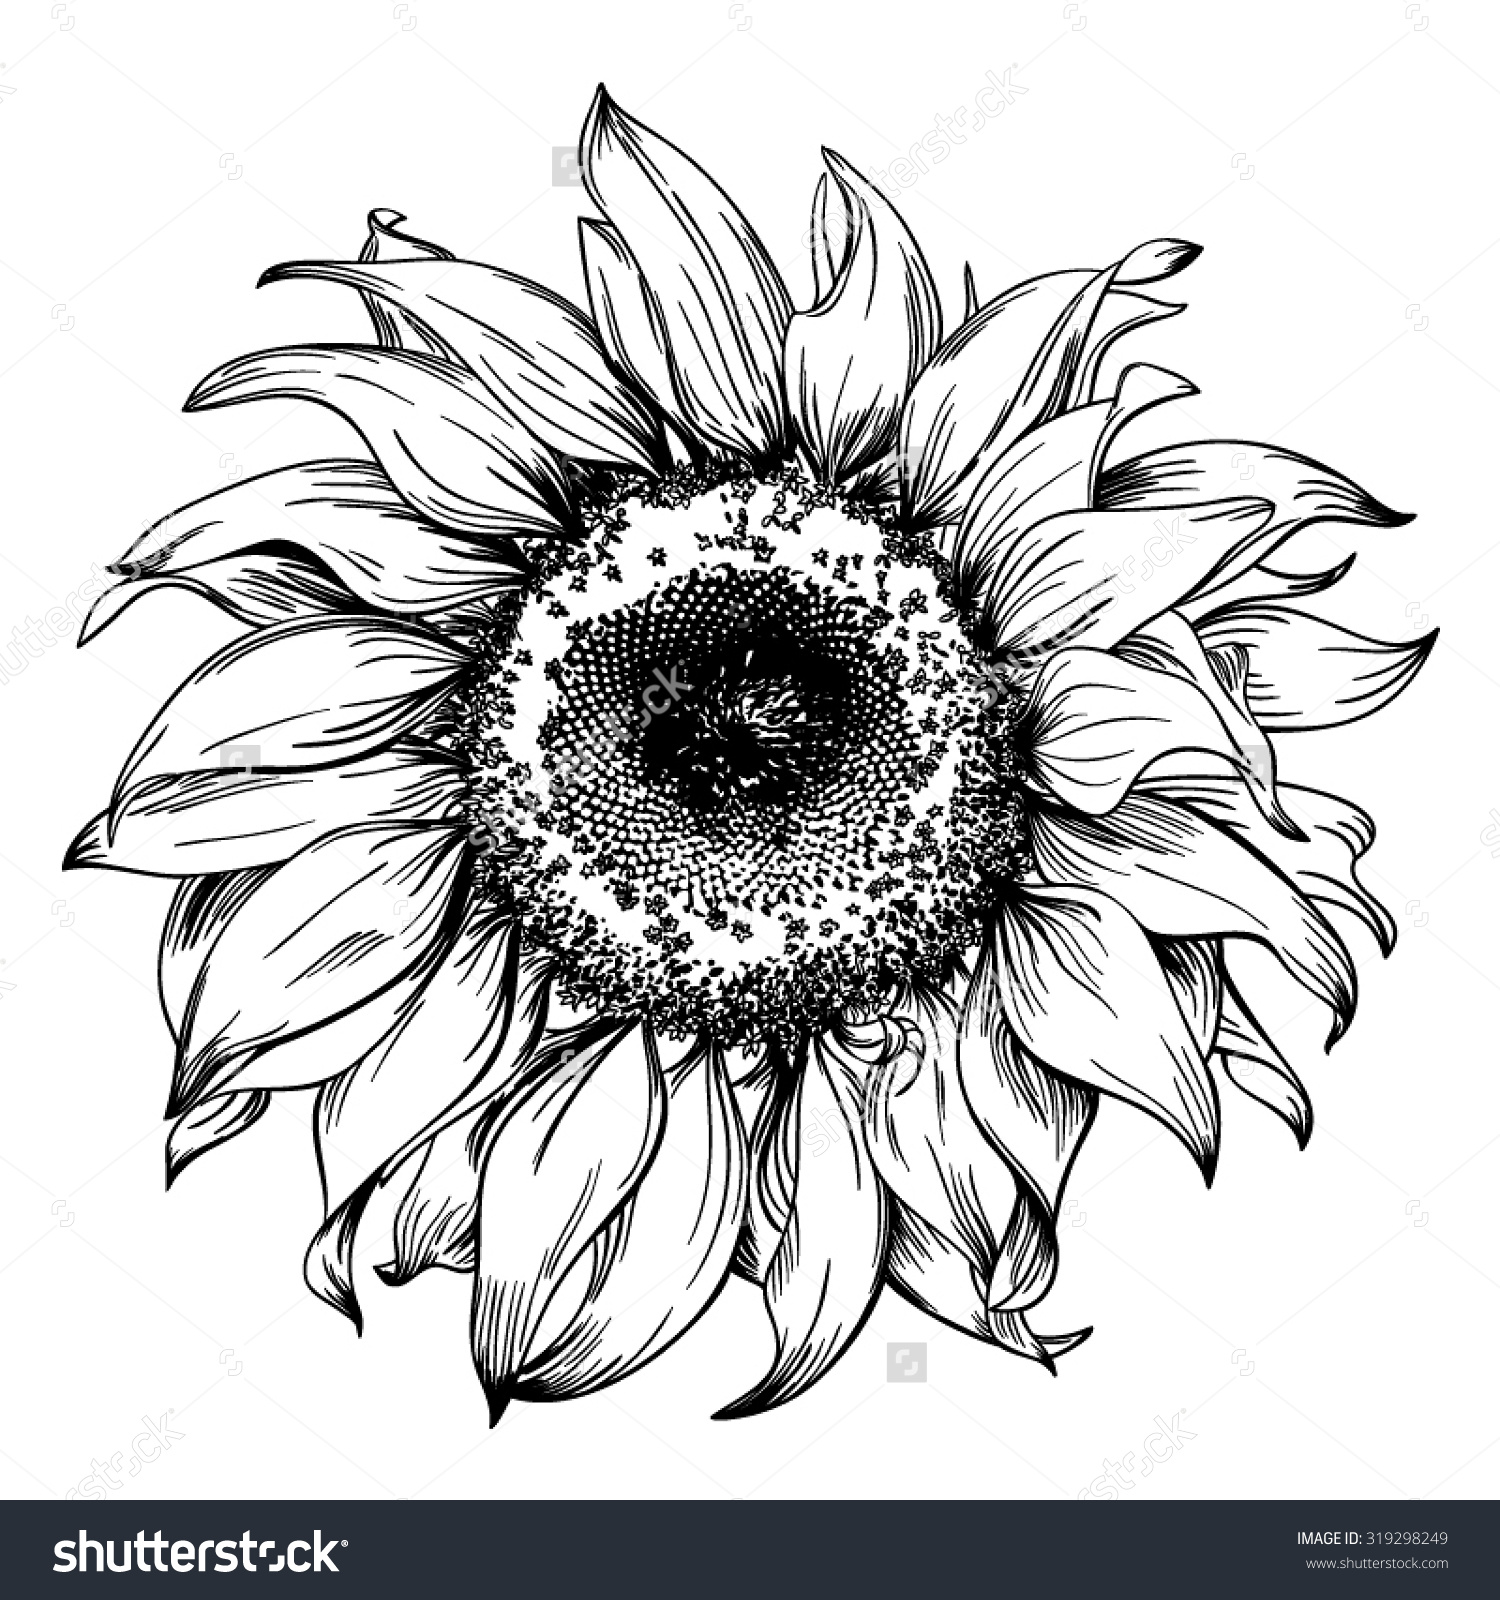 Drawn hand sunflower Sunflower And Vintage Realistic Pen